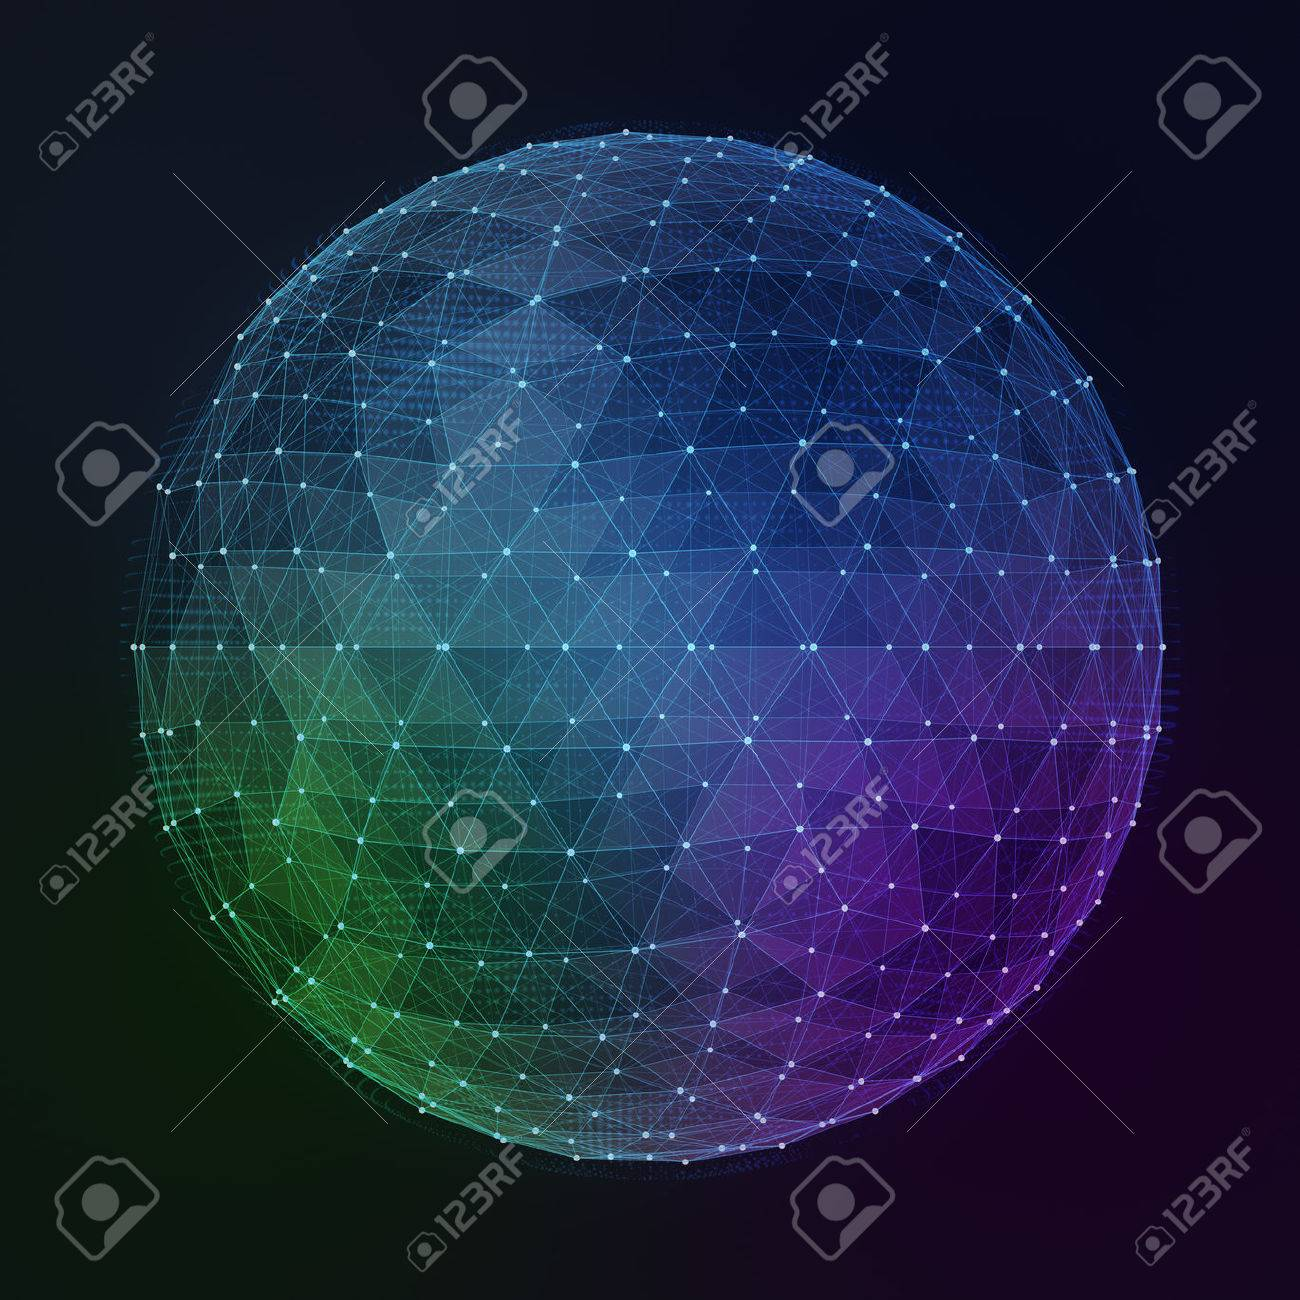 Abstract digital global network. Wire-frame illustration of globe. - 44371871